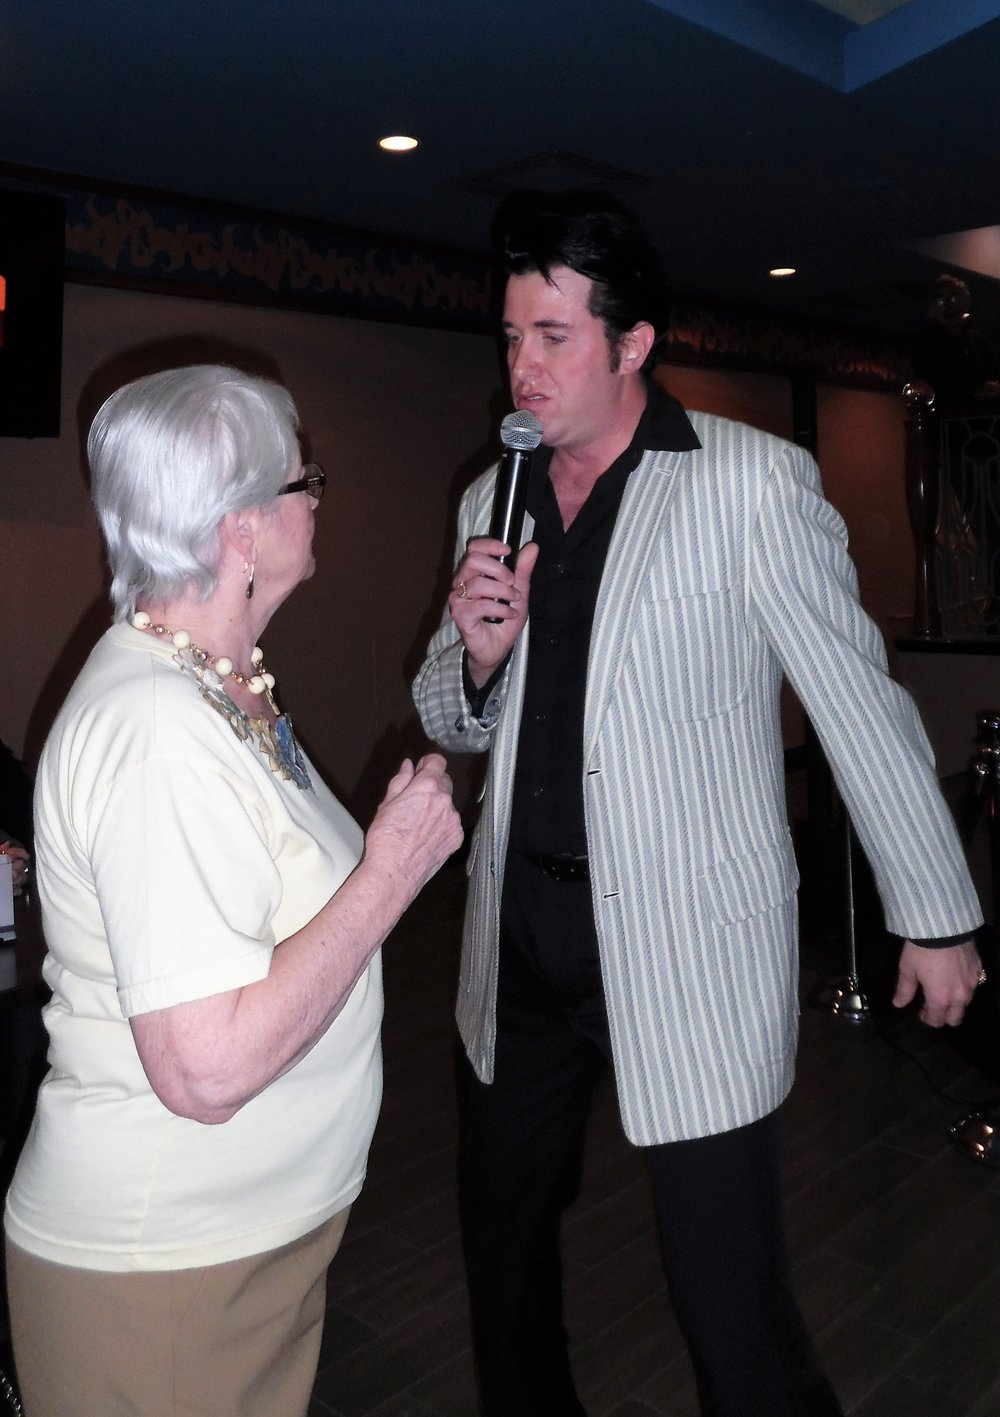 Joan from Stoney Creek dances as  Matt Cage  serenades her during his Flamboro Downs concert.